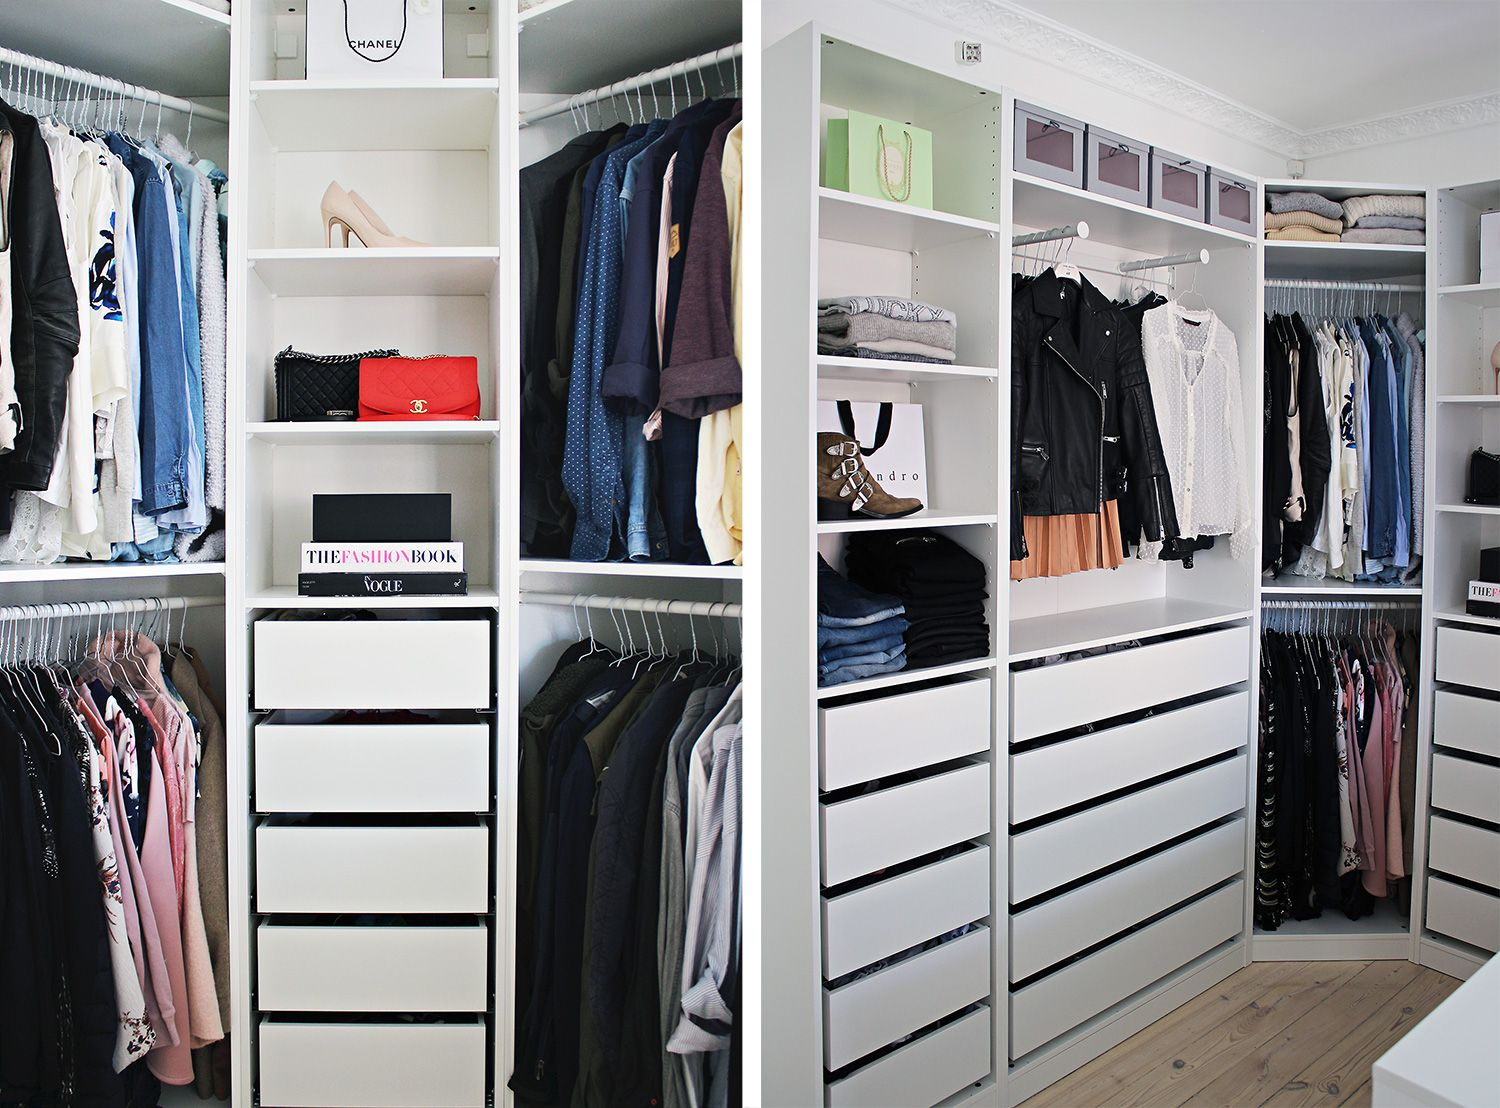 Walk In Closet Pinterest How To Design Your Closet Passionsforfashion Walk In Closet